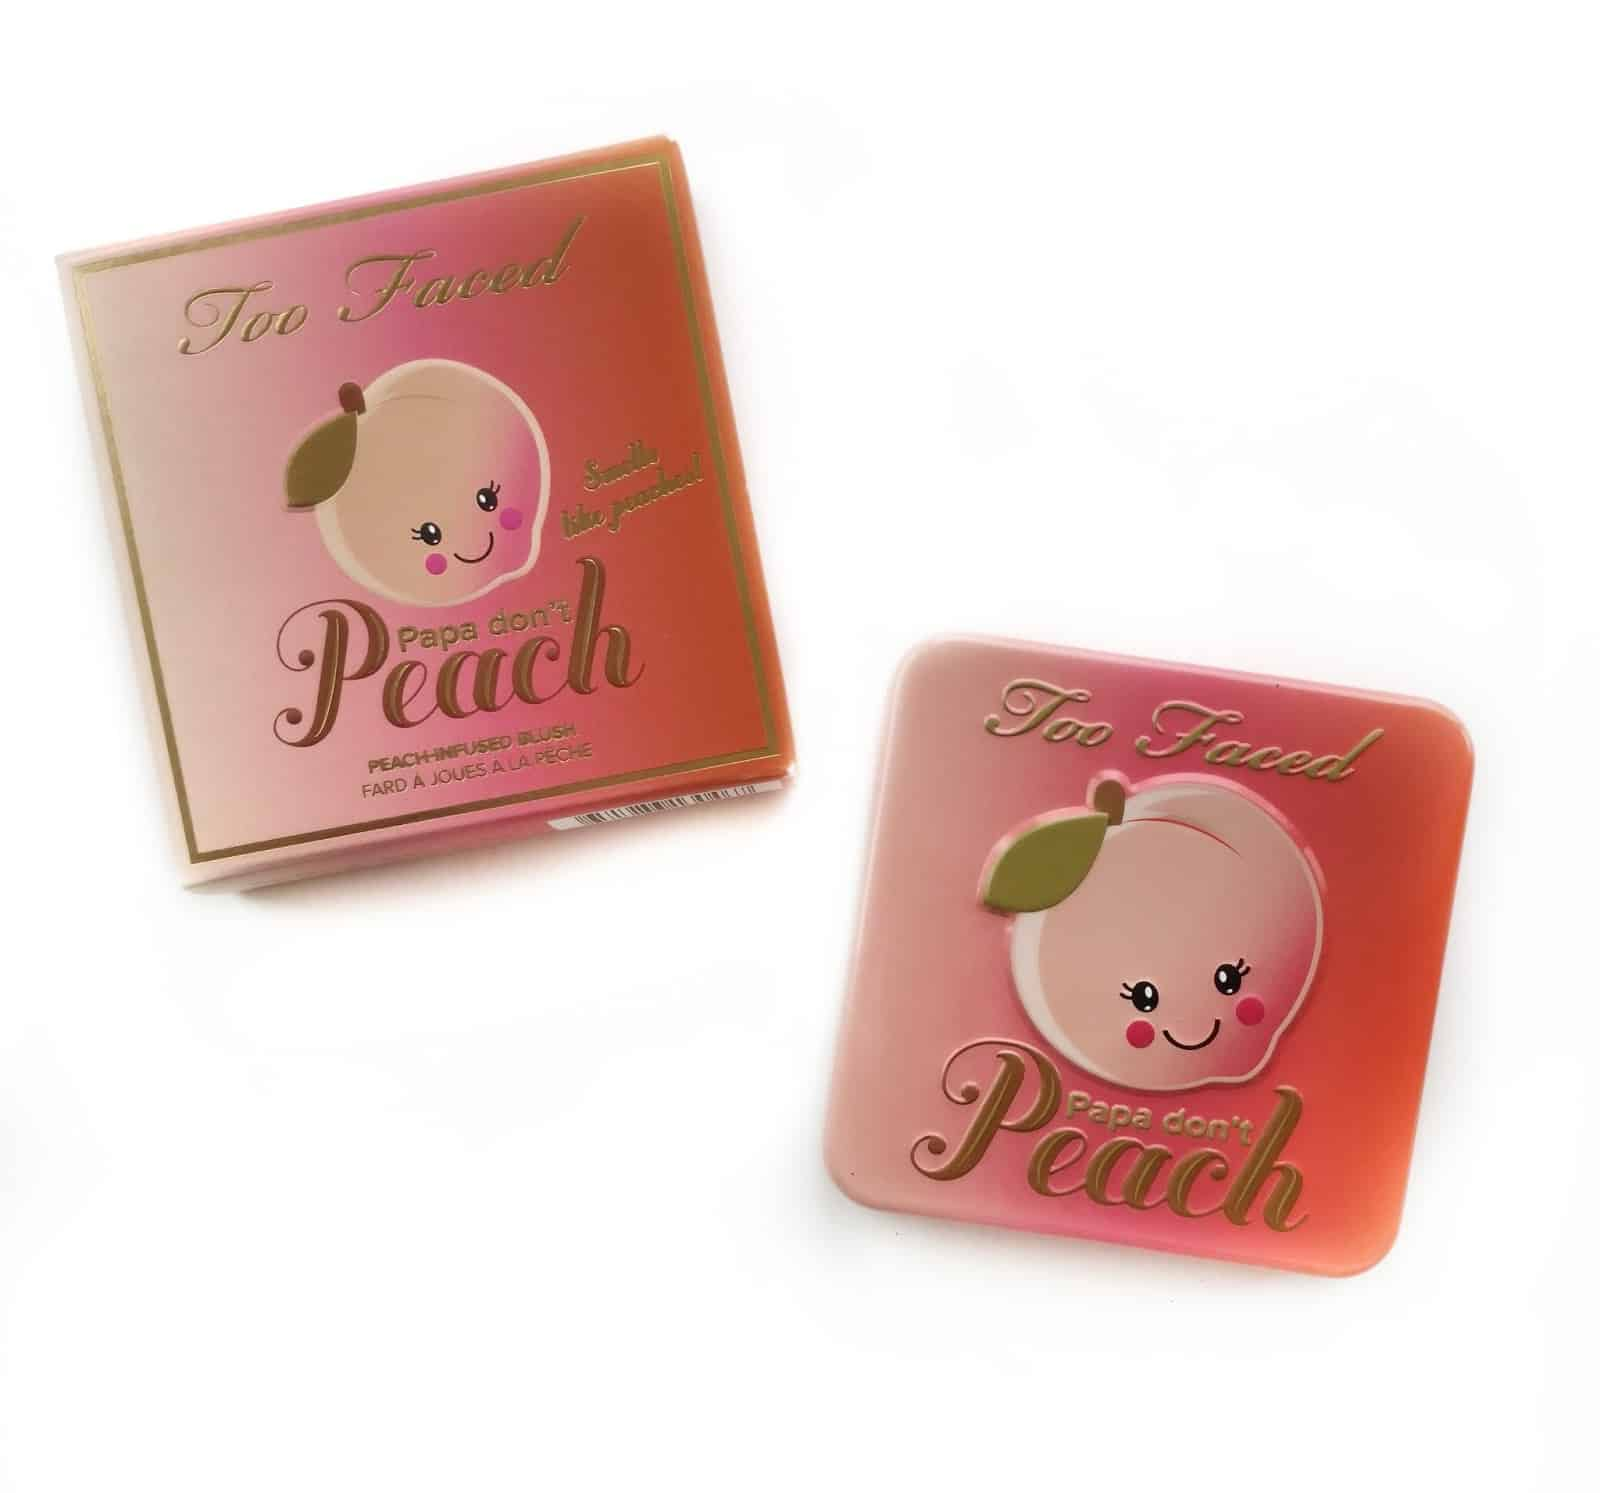 TOO FACED PAPA DON'T PEACH BLUSH REVIEW